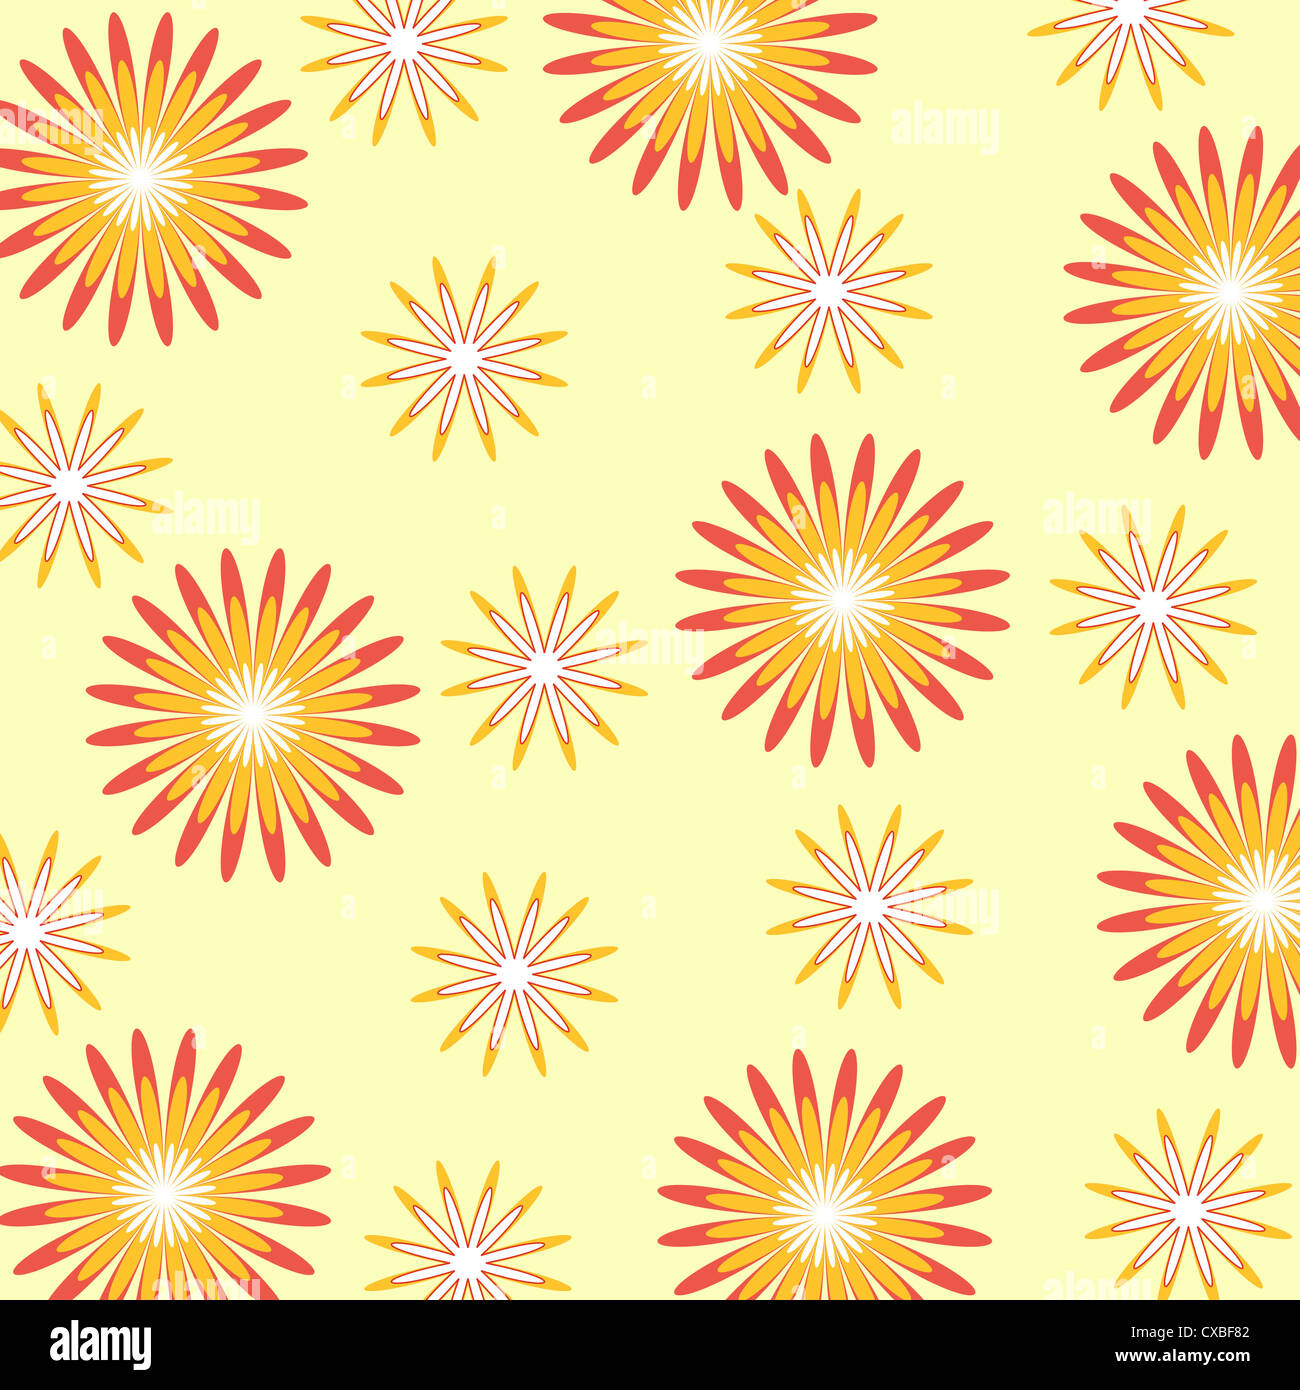 Seamless floral pattern in yellow and orange Stock Photo